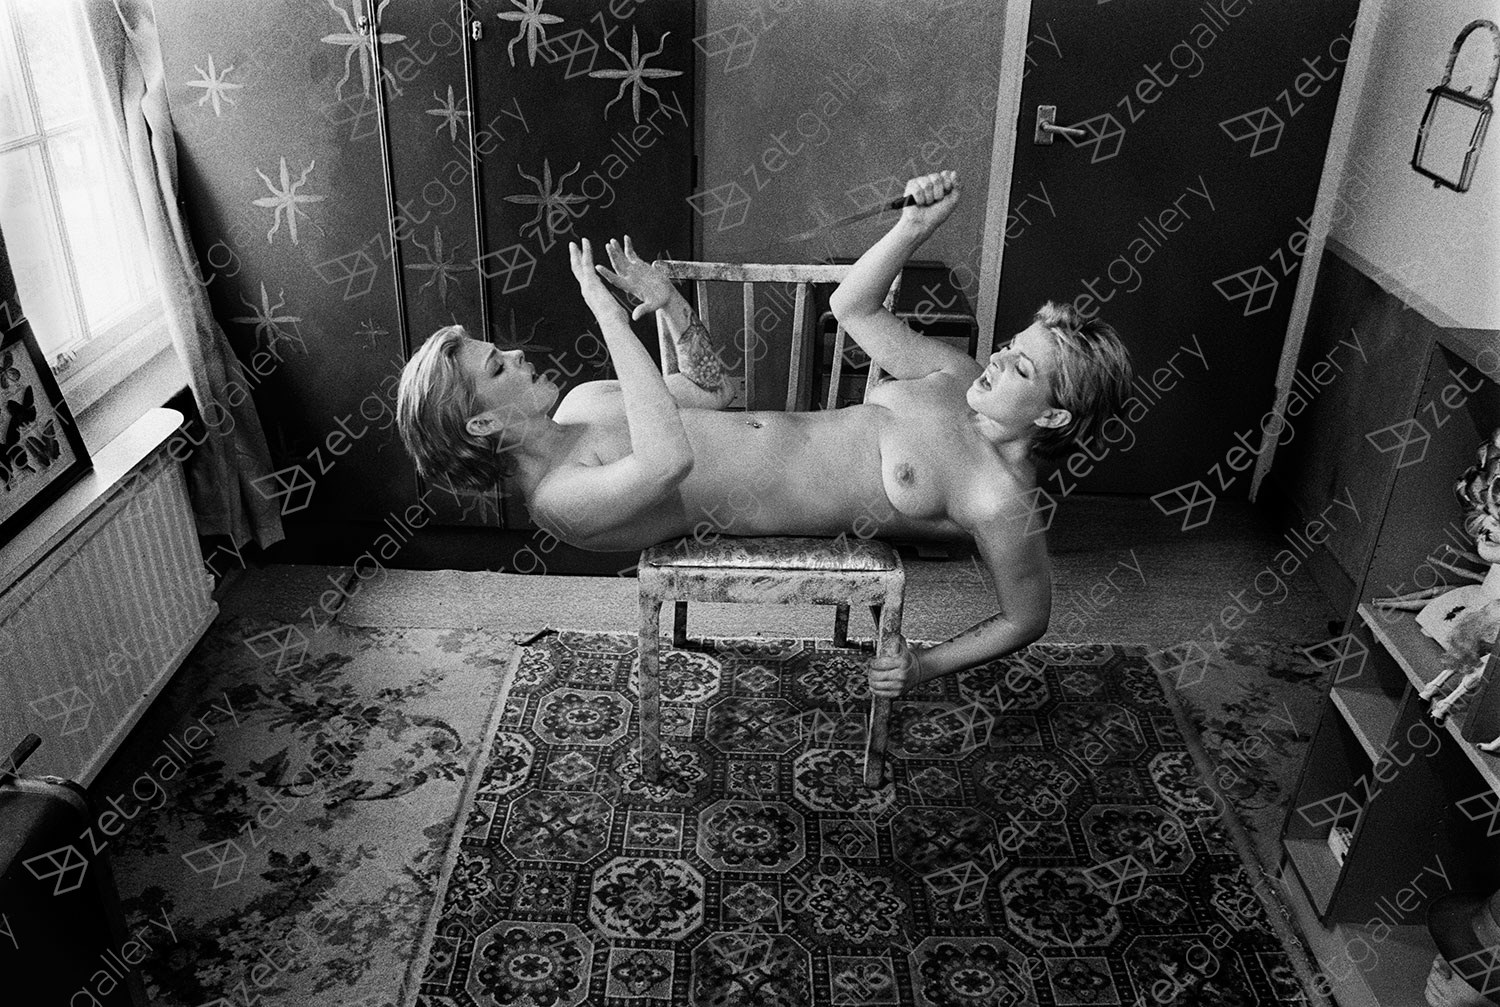 Succubus with Knife, original Avant-Garde Analog Photography by Alva Bernadine